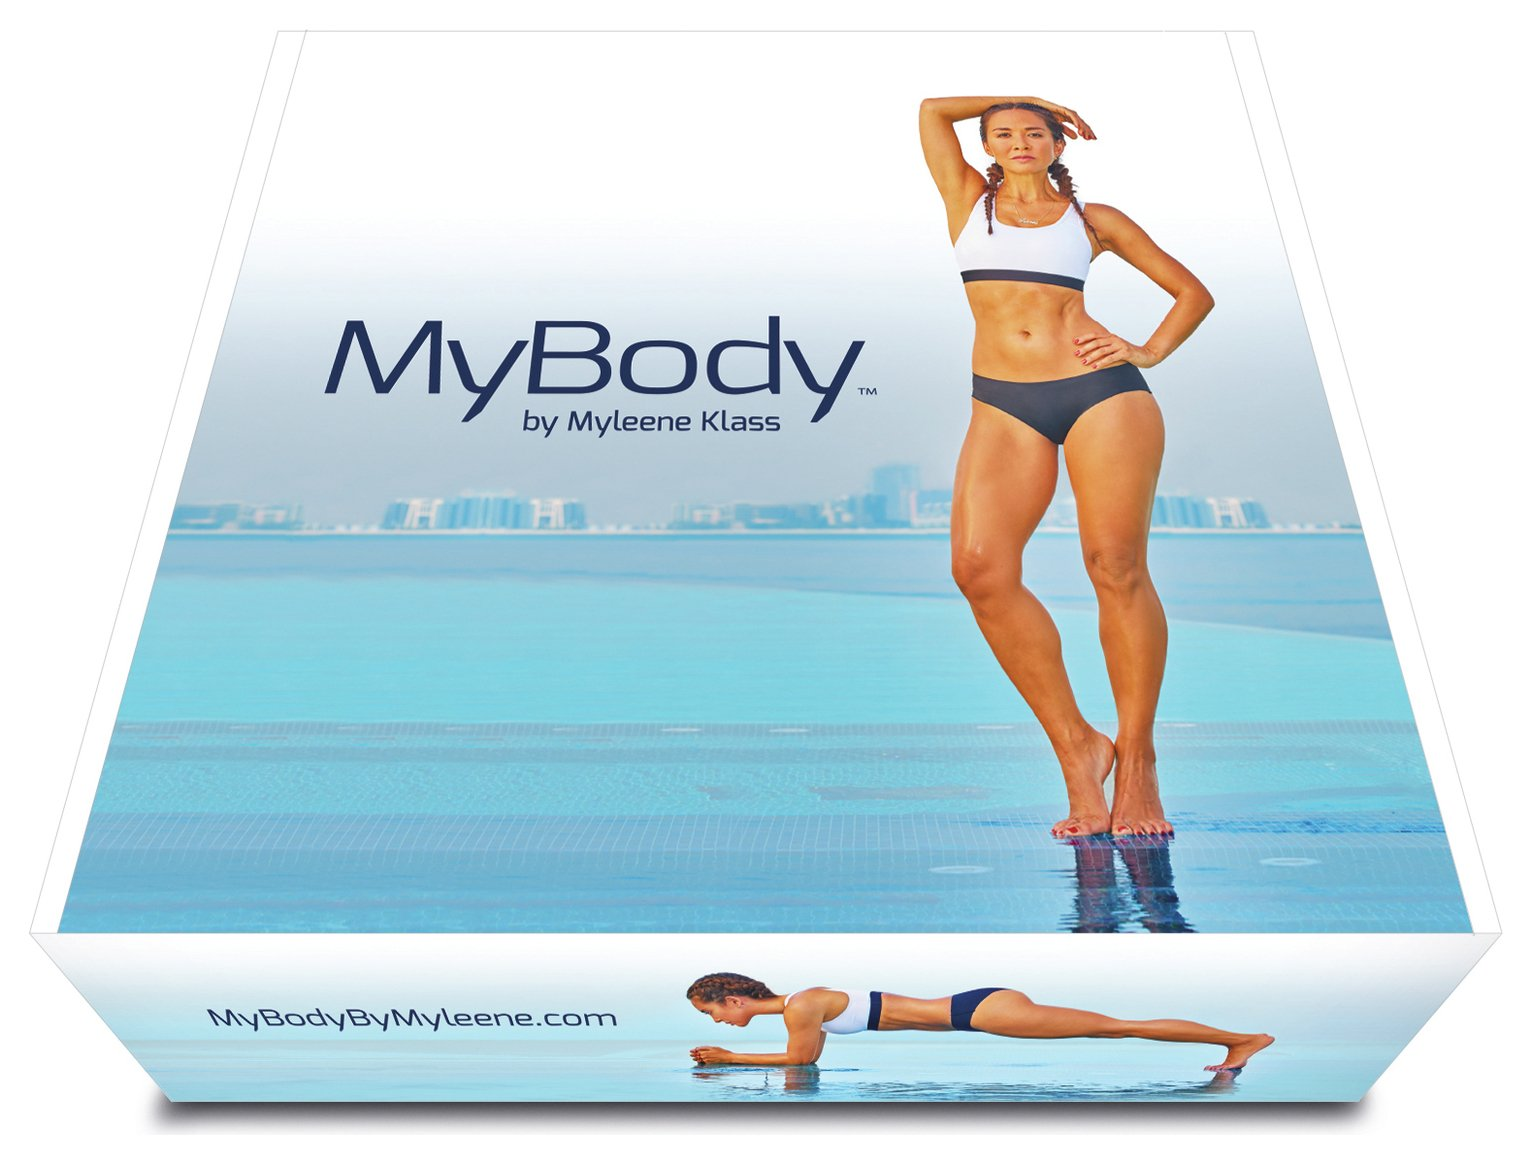 The My Body Home Workout by Myleene Klass